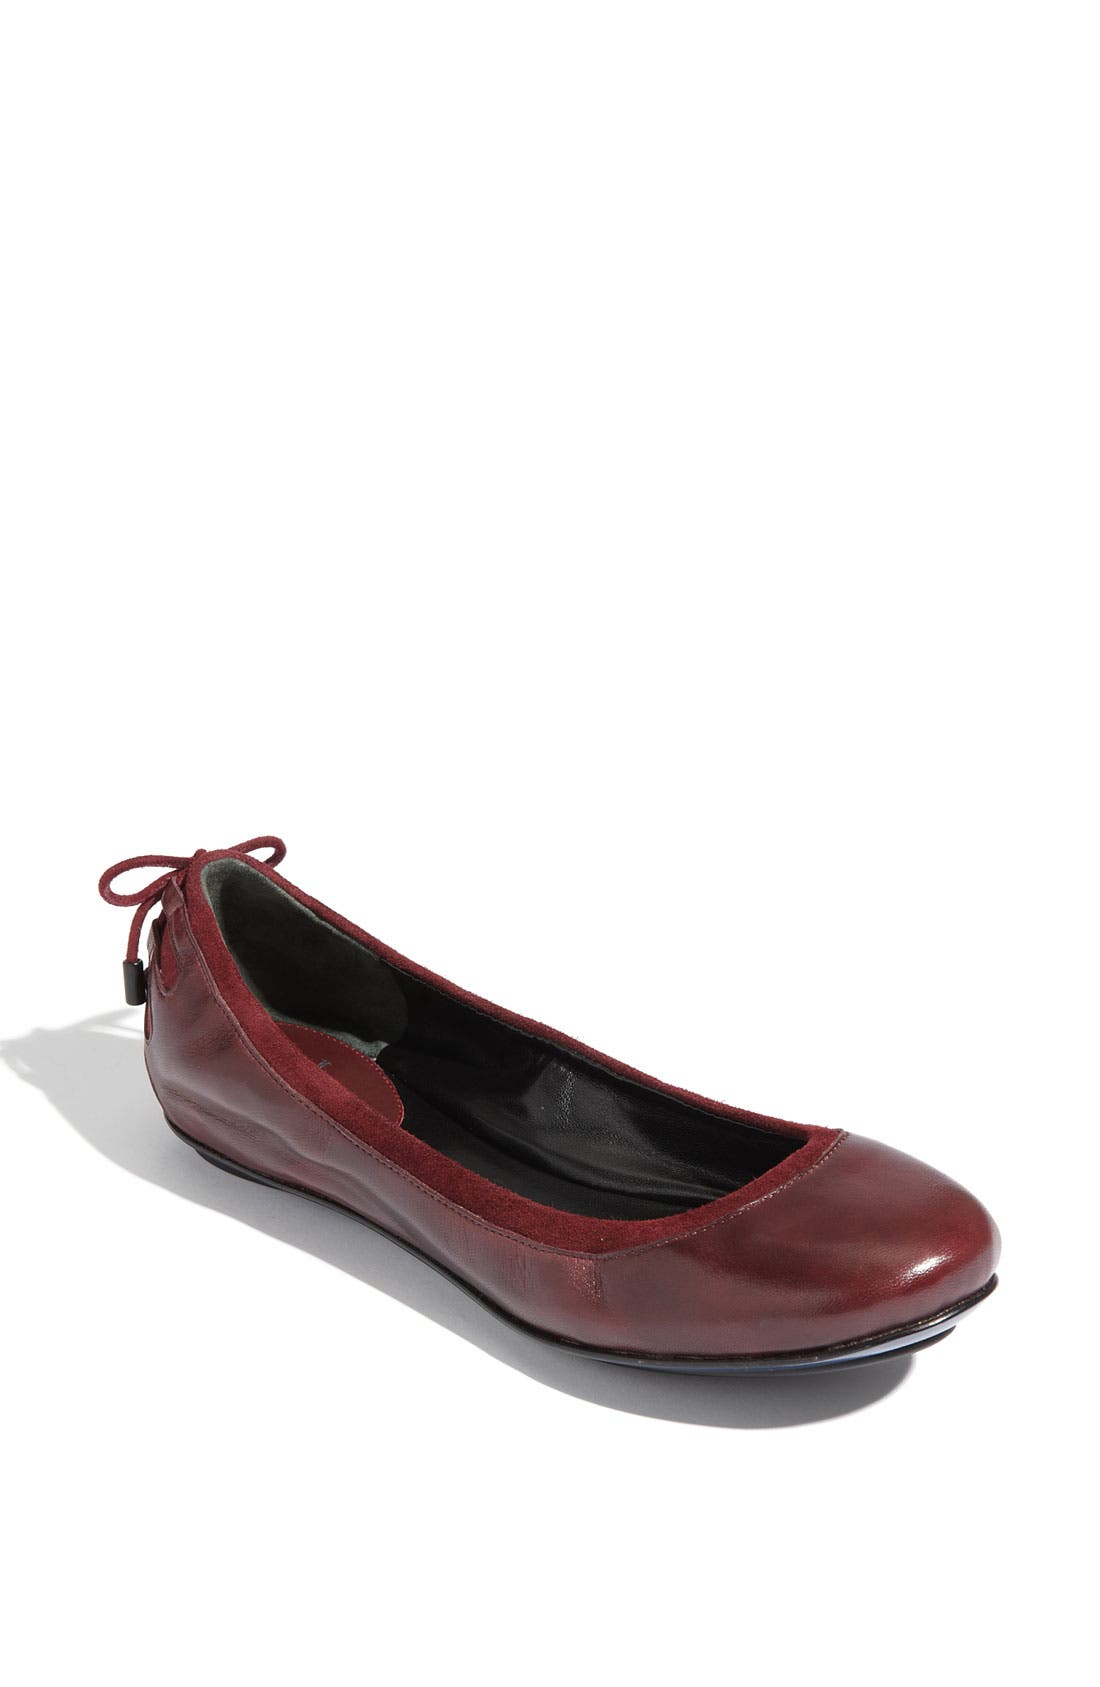 ,                             Maria Sharapova by Cole Haan 'Air Bacara' Flat,                             Main thumbnail 83, color,                             610